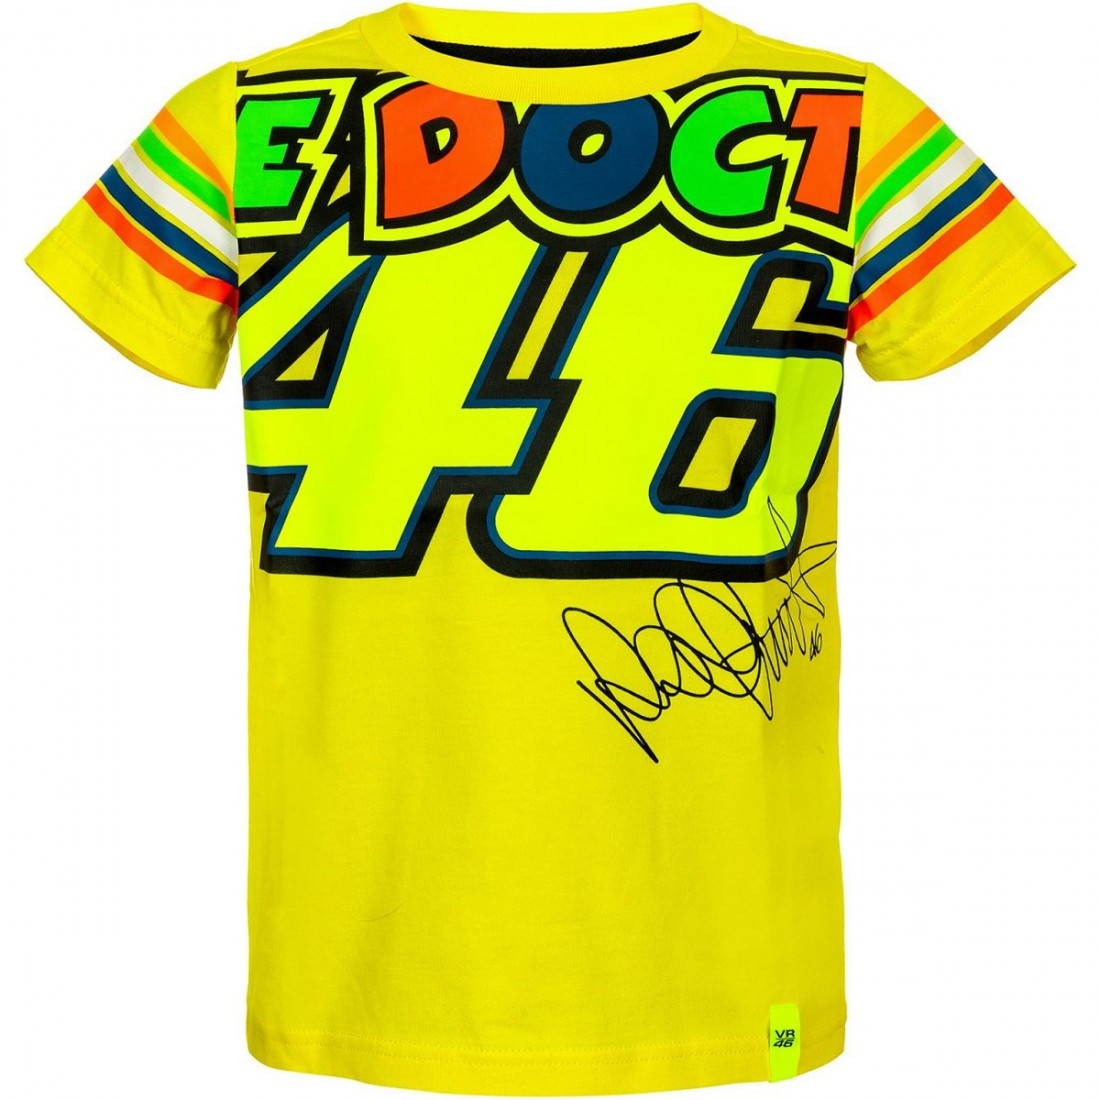 Rossi Doctor 307901 The 46 Junior Road Vr46 Maillot Off 0w8nNvm